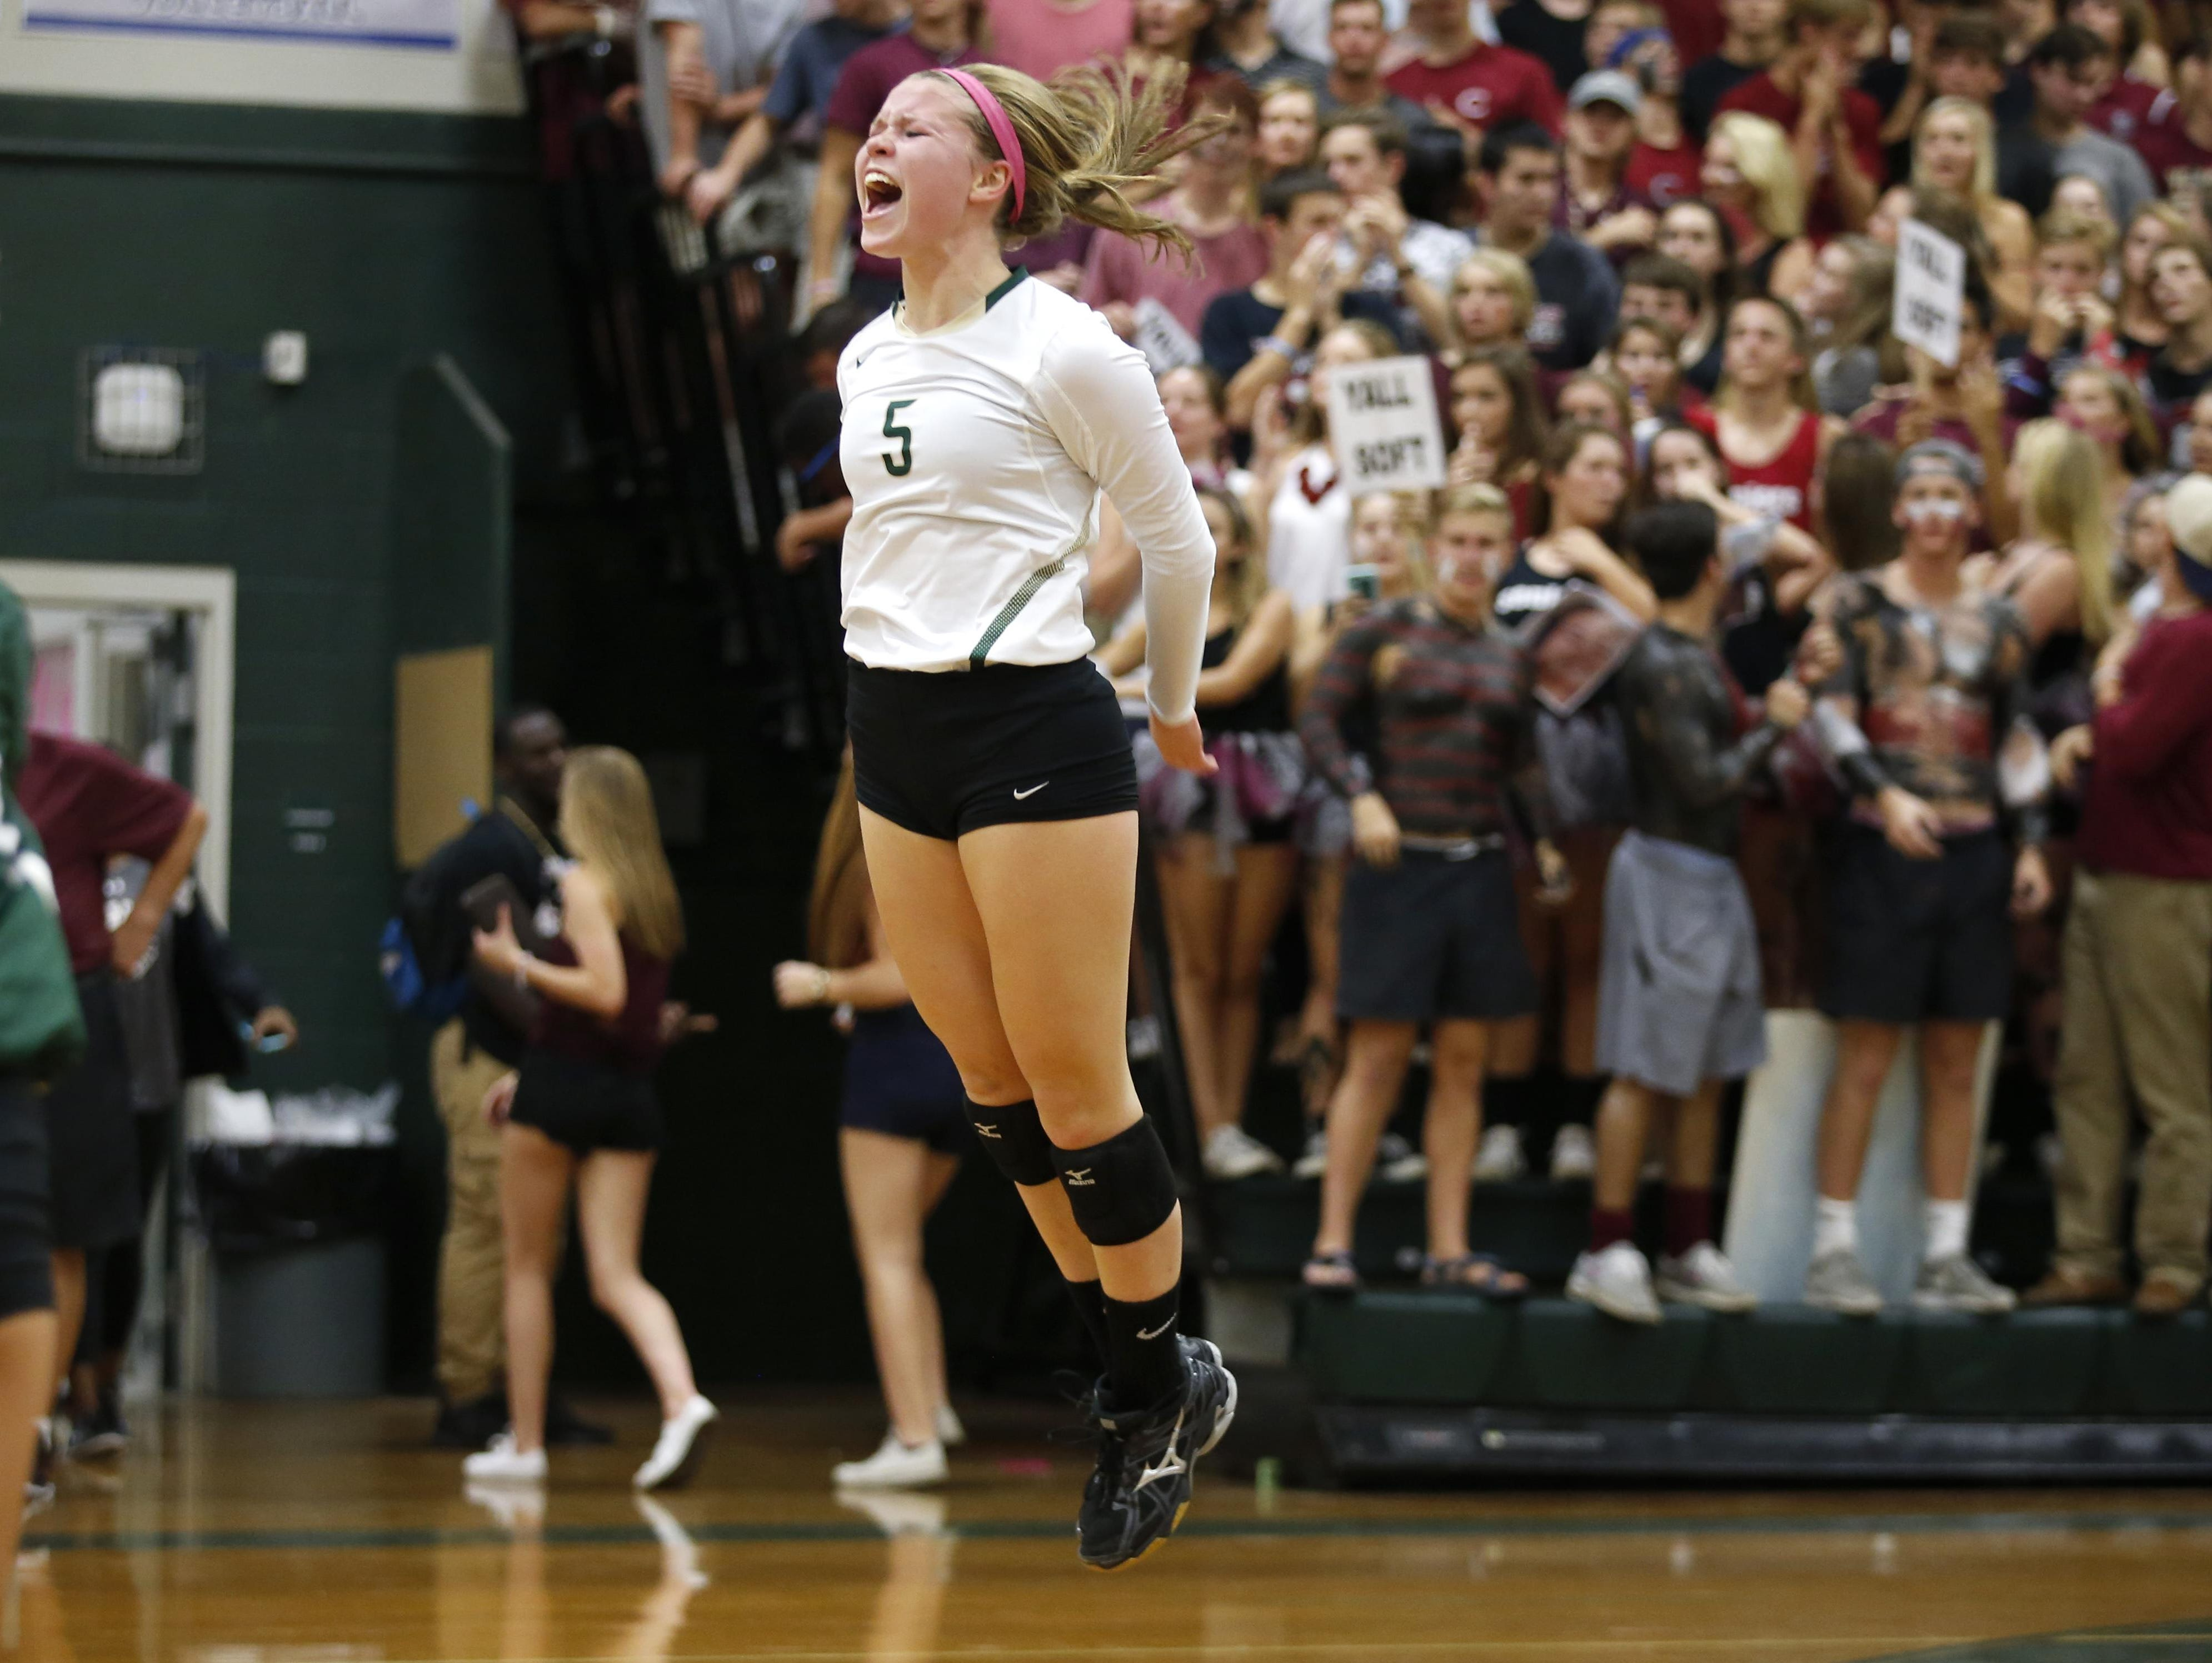 Lincoln's Katie Seccombe celebrates after scoring a point on a serve against Chiles during their match at Lincoln High School on Tuesday. The Trojans picked up an important 3-2 district win.